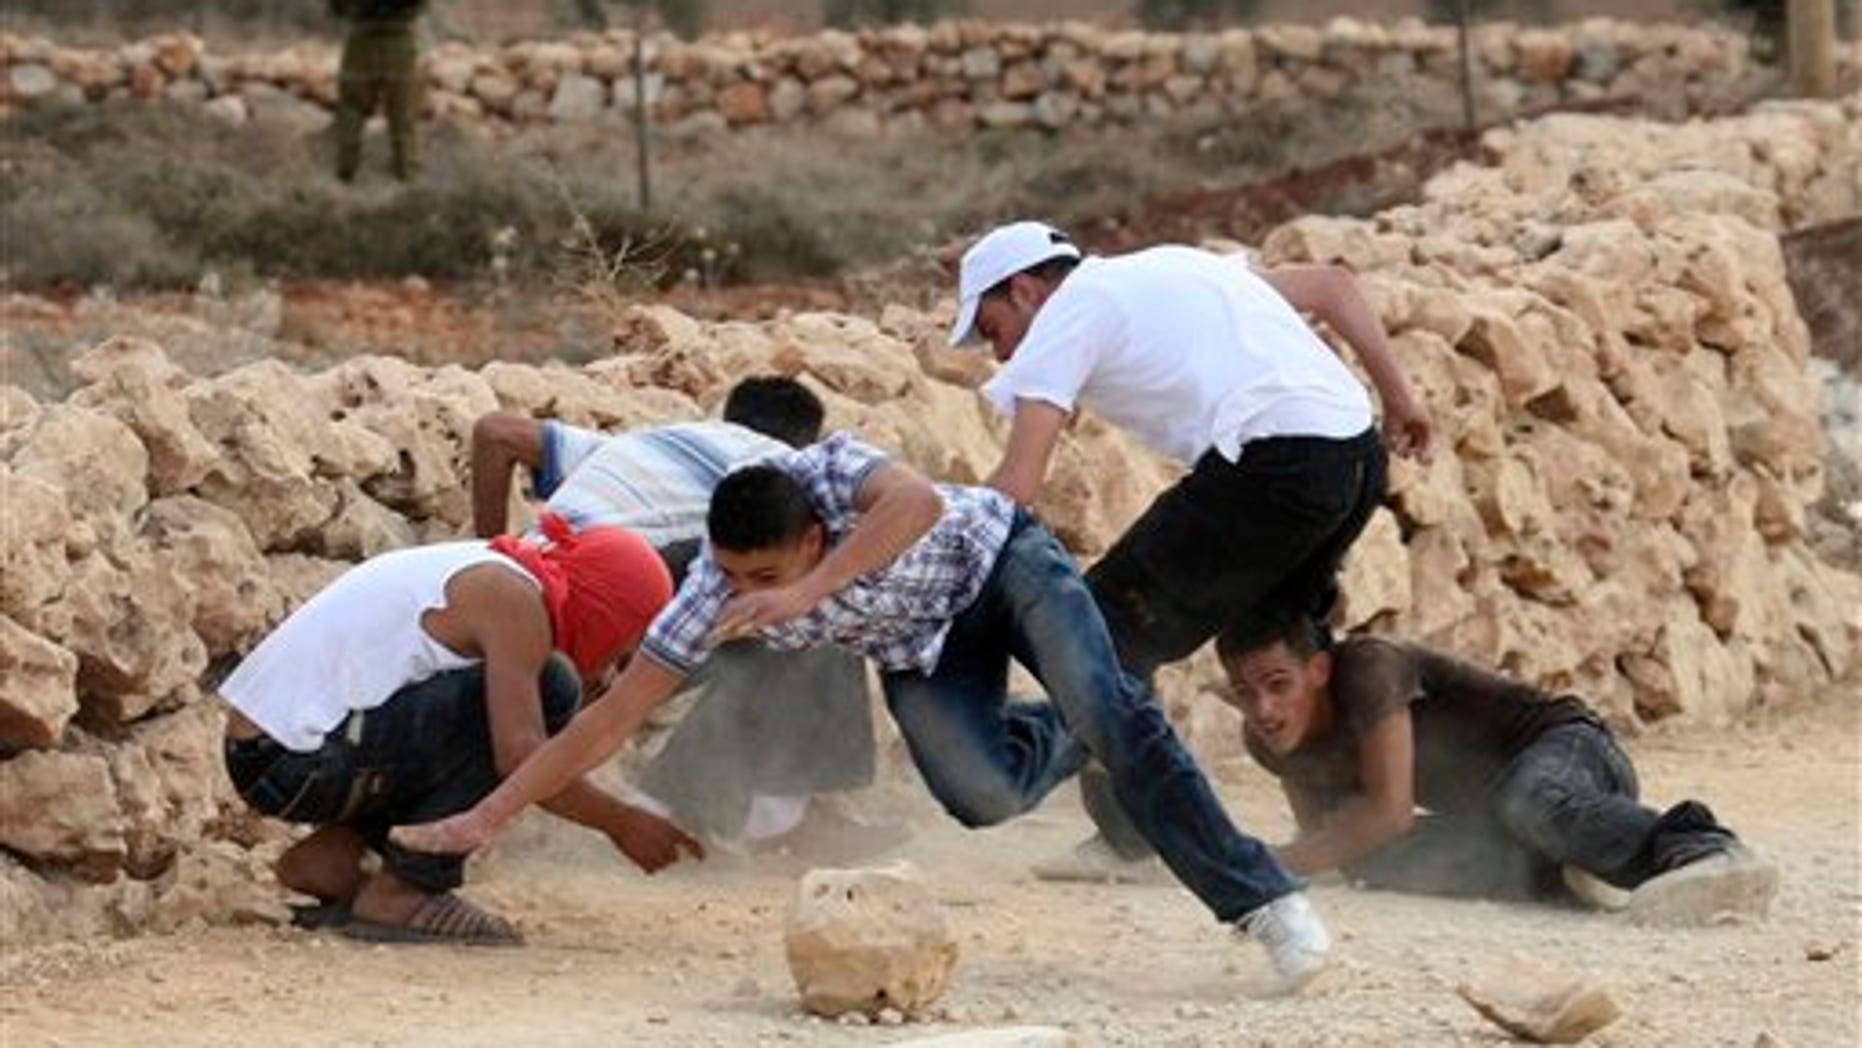 September 23: Palestinians scramble for cover during a clash with Israeli forces in the village of Qusra, south of Nablus, in the West Bank.